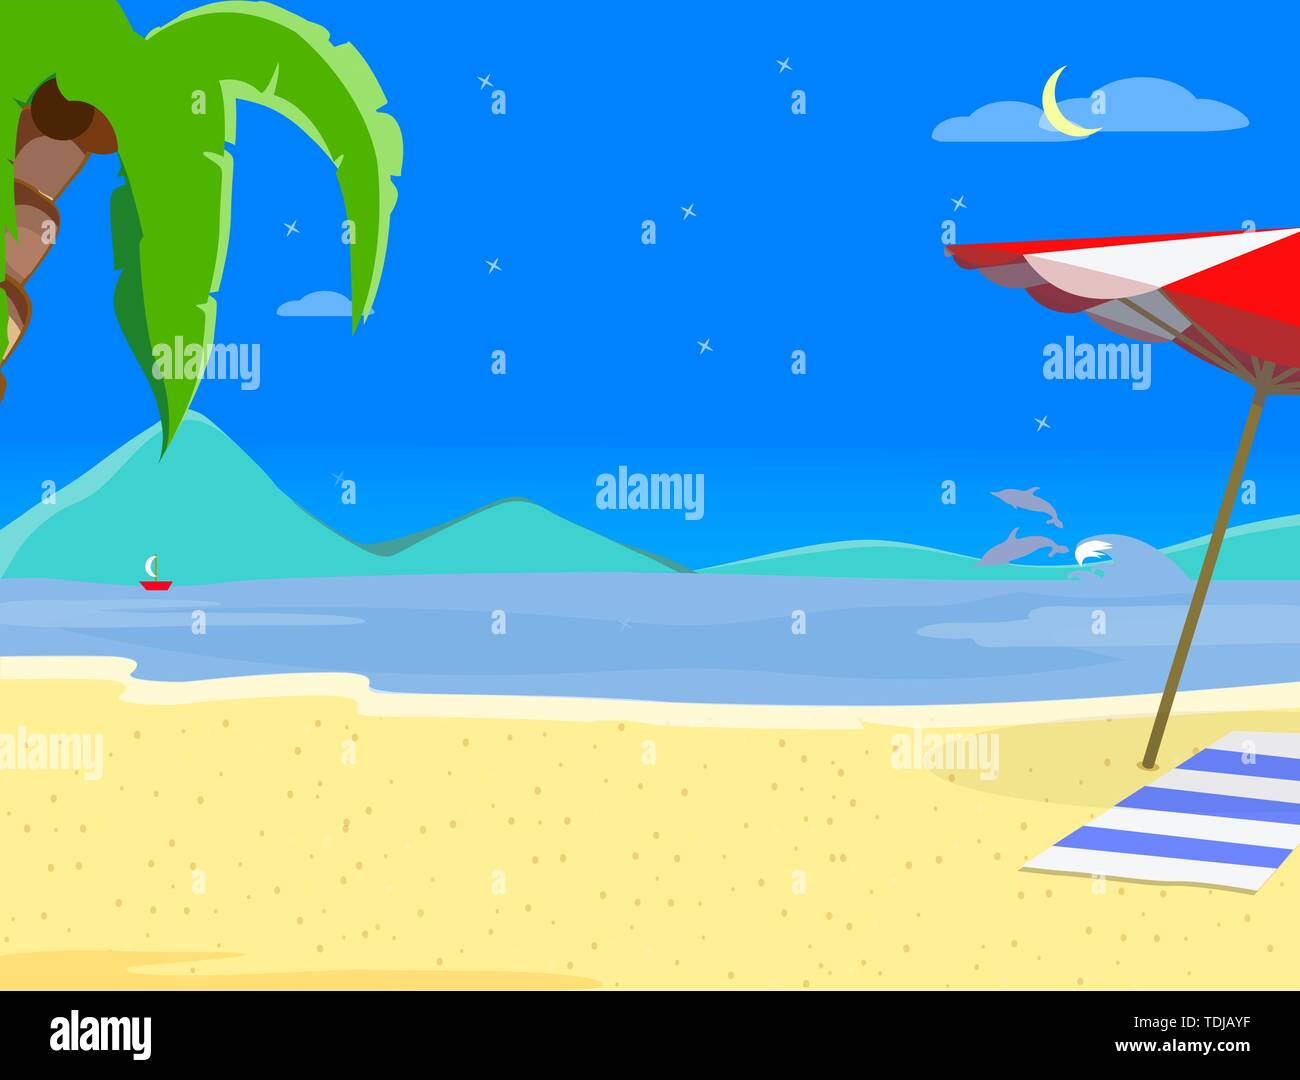 Summer Beach Background, Night Time Landscape of Exotic Seaside at Nighttime, Resort Coast Seascape with Palm Tree, Dolphins, Sailing Ship and Sandy S Stock Vector